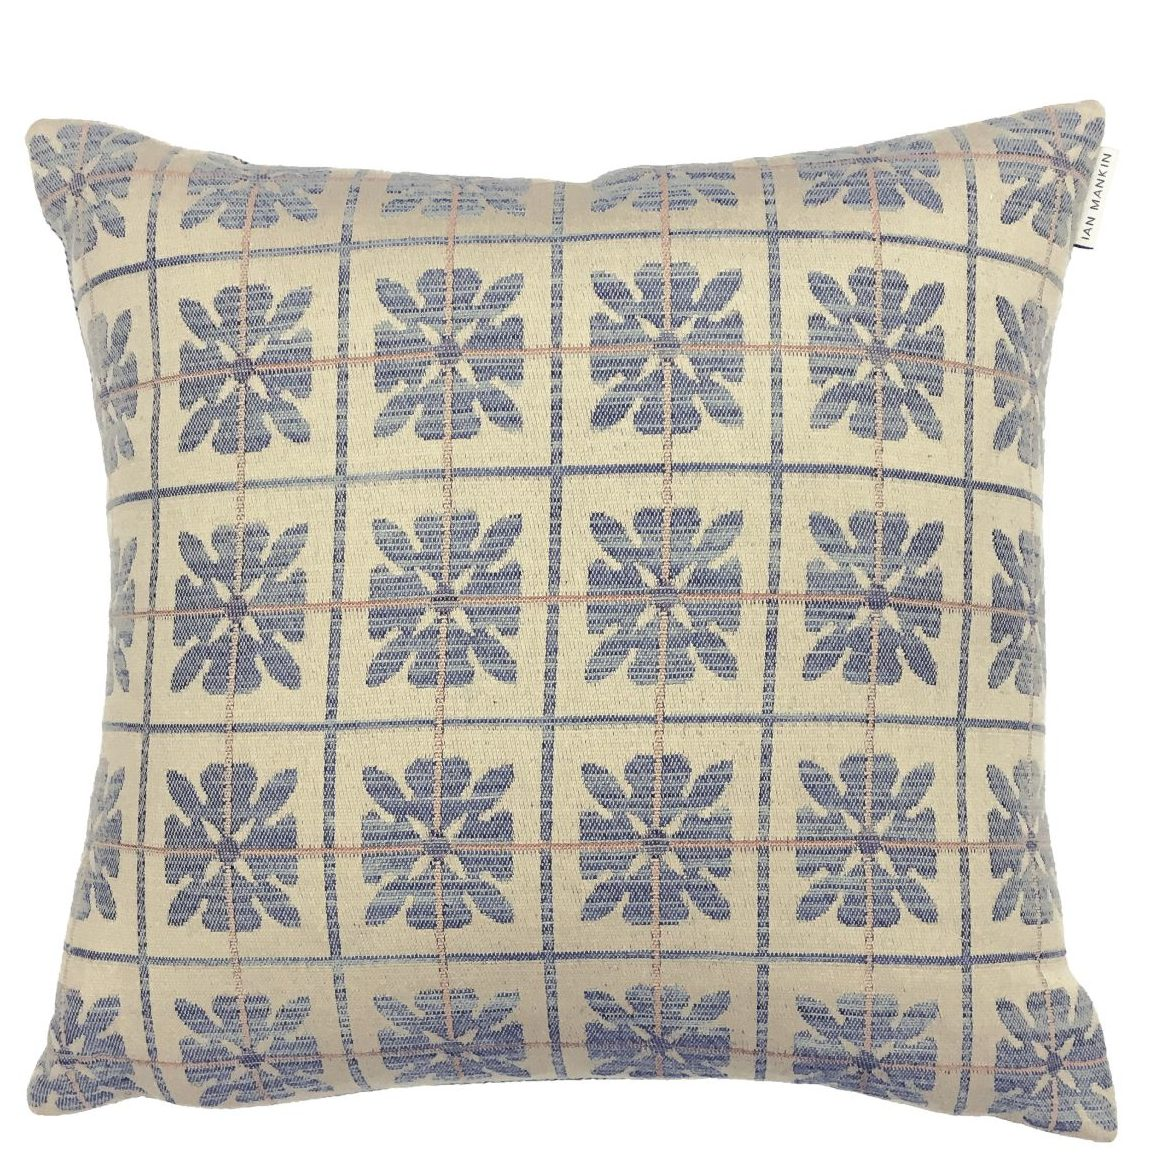 Ian Mankin Landmark 1485 Peakes Check Checked Monarch Blue Cushion CU282 200 4040